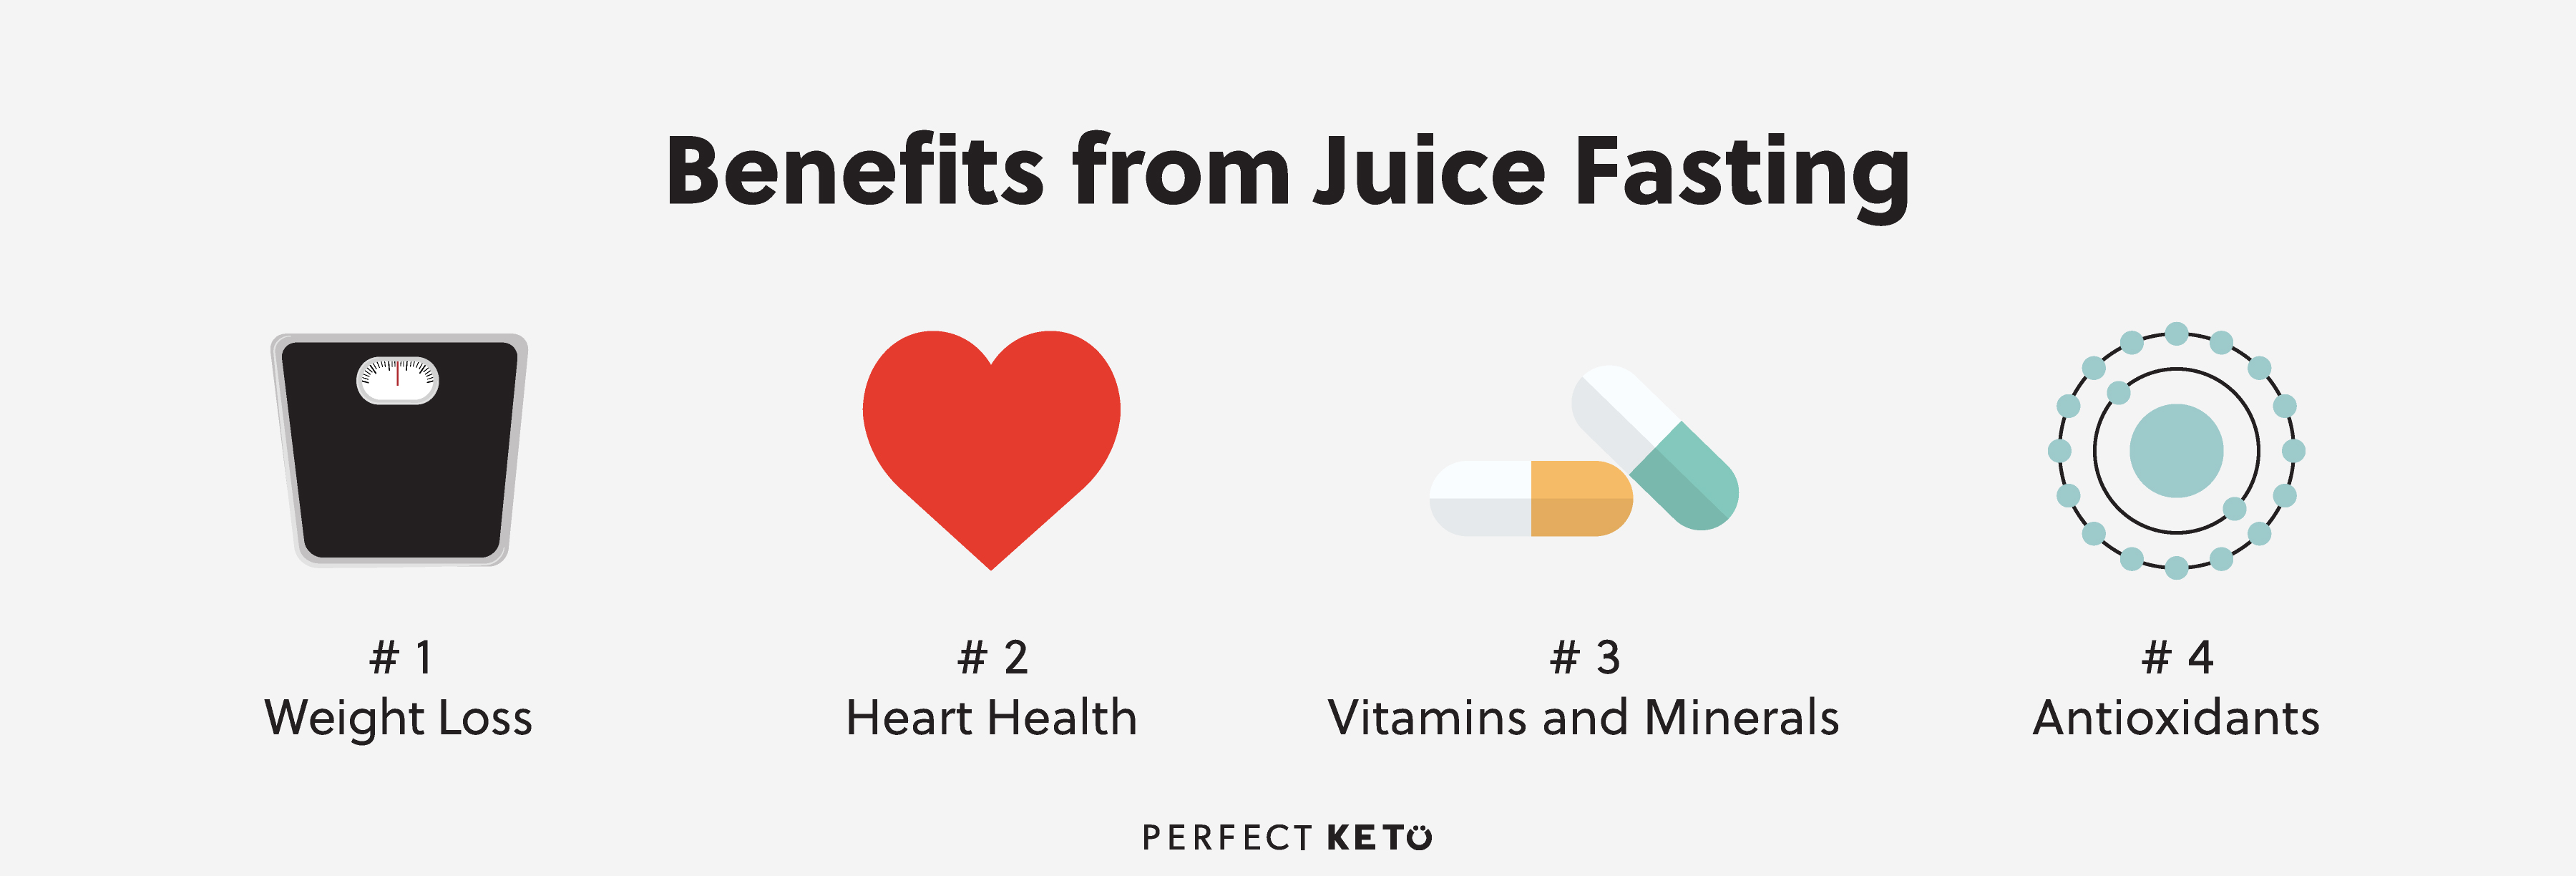 benefits-from-juice-fasting.jpg